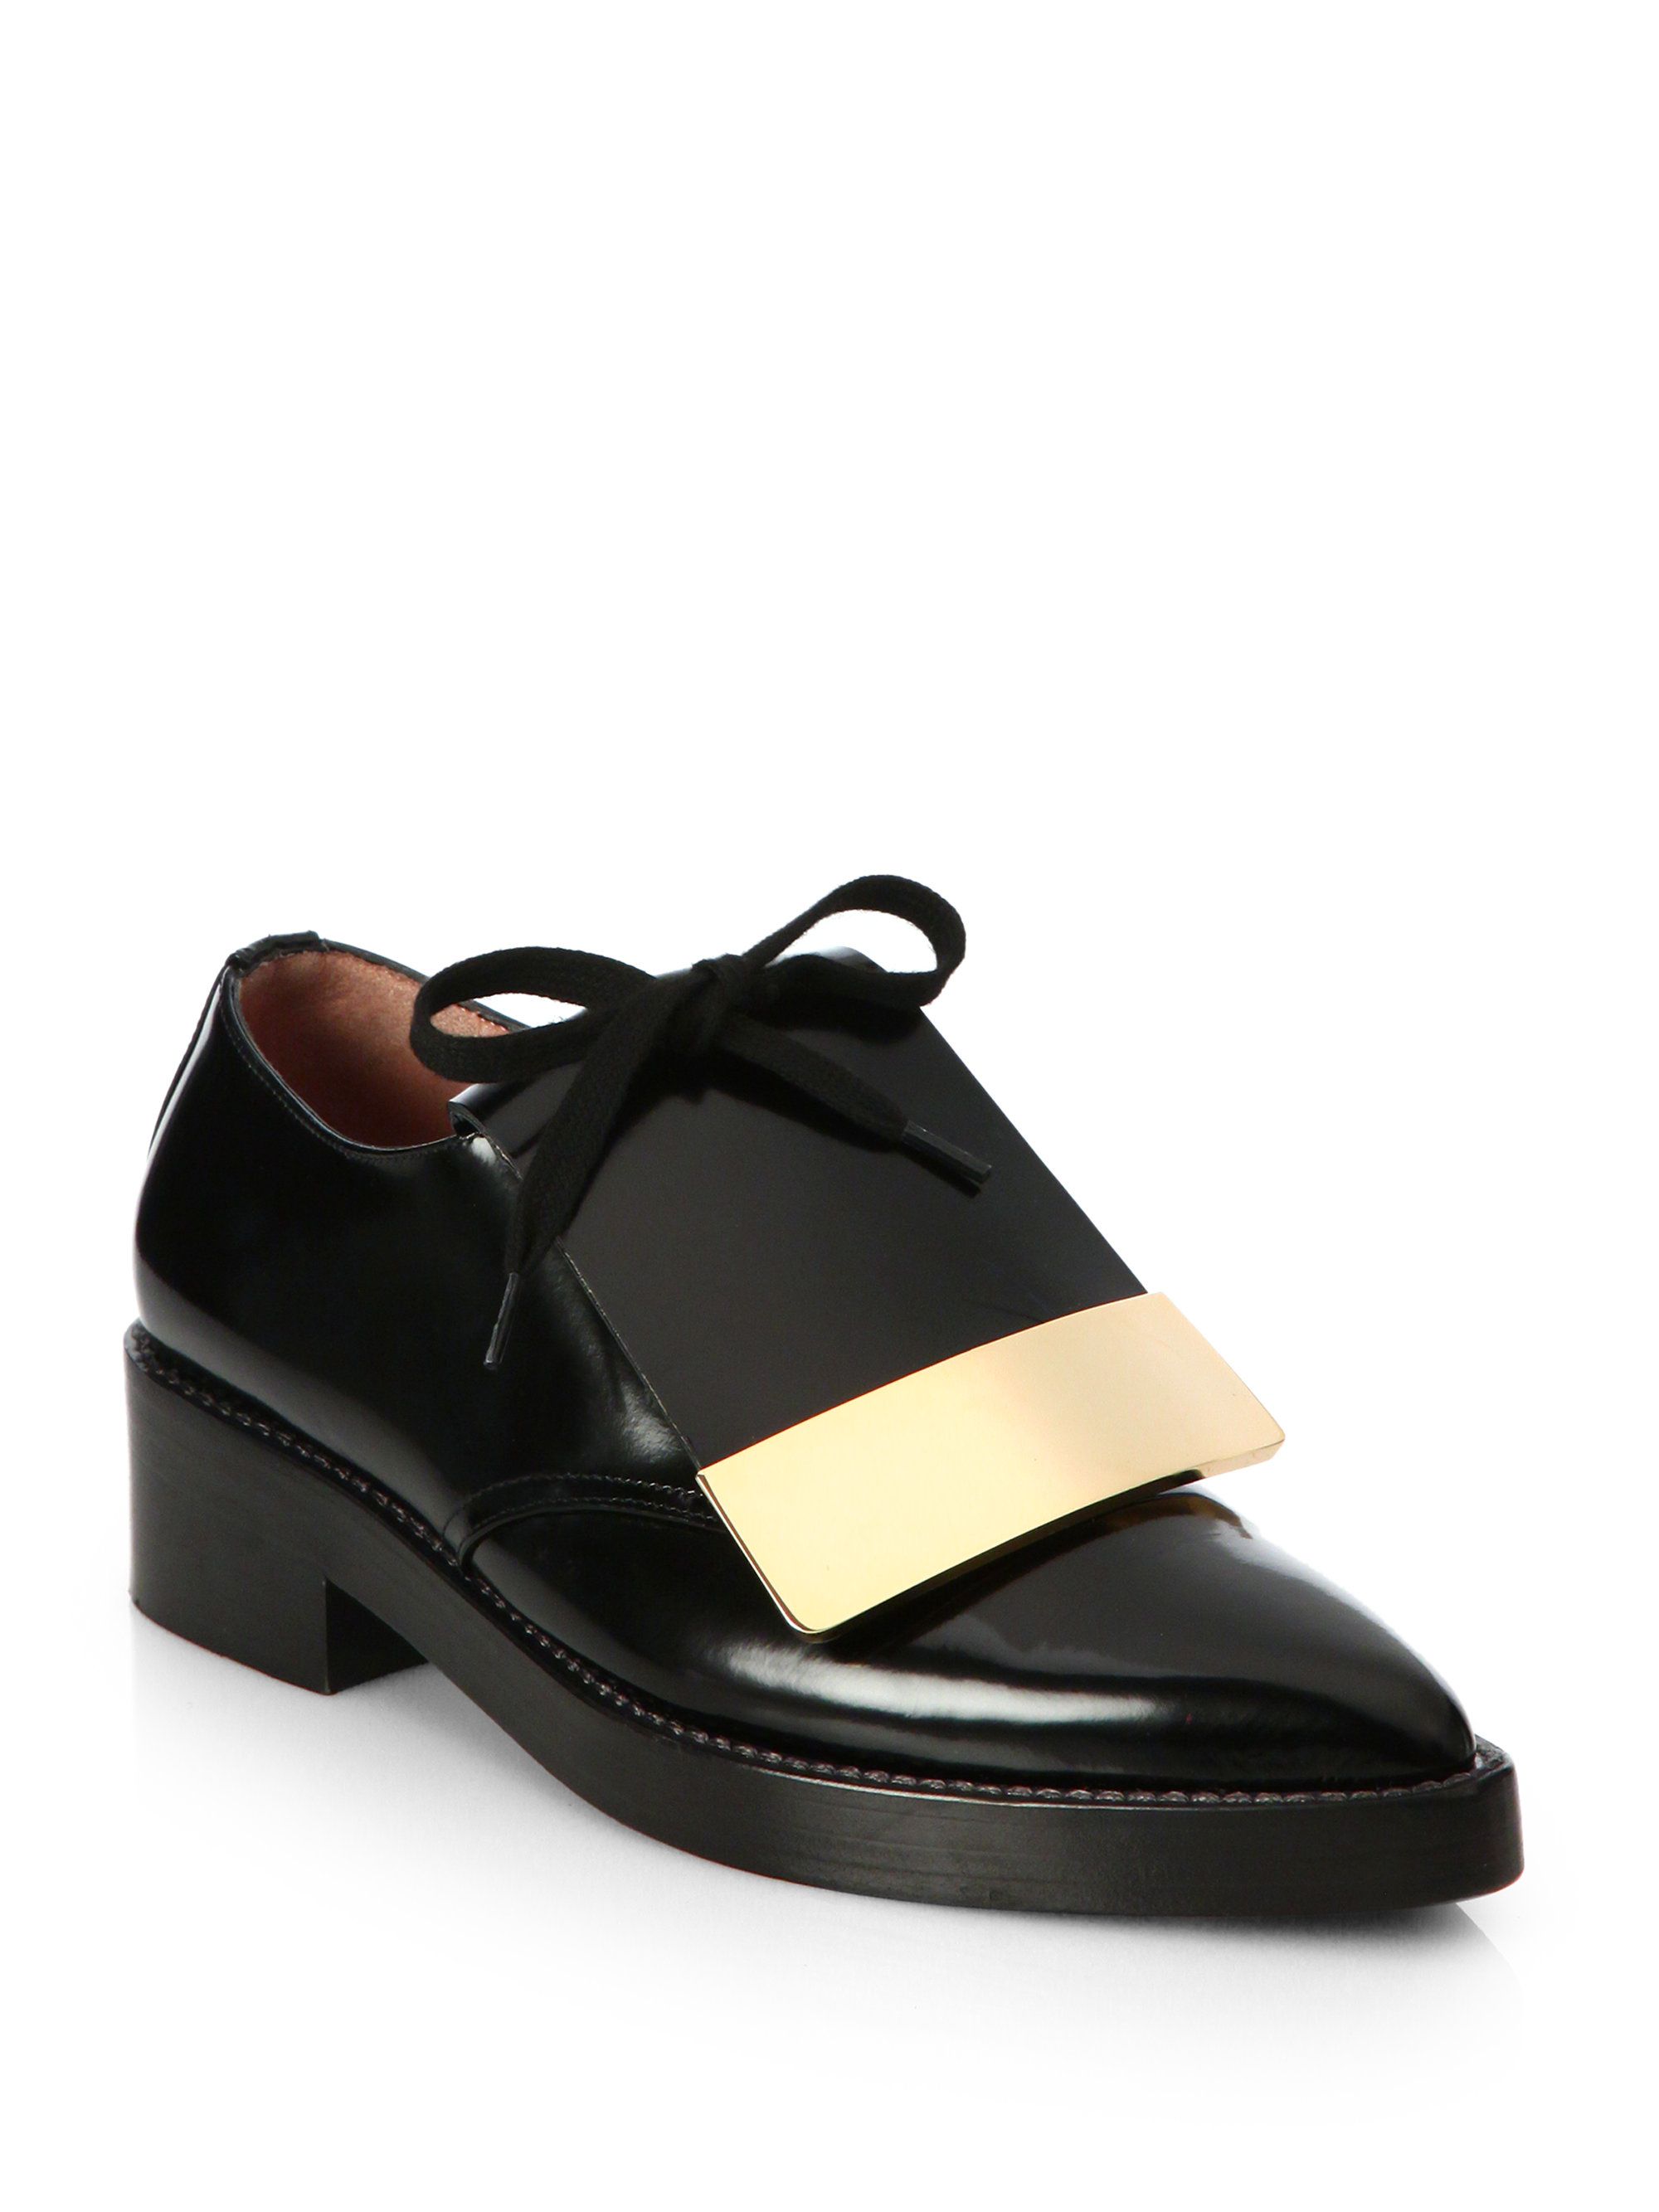 Marni Leather Pointed-Toe Oxfords amazon for sale discount extremely latest outlet many kinds of online store IumER9